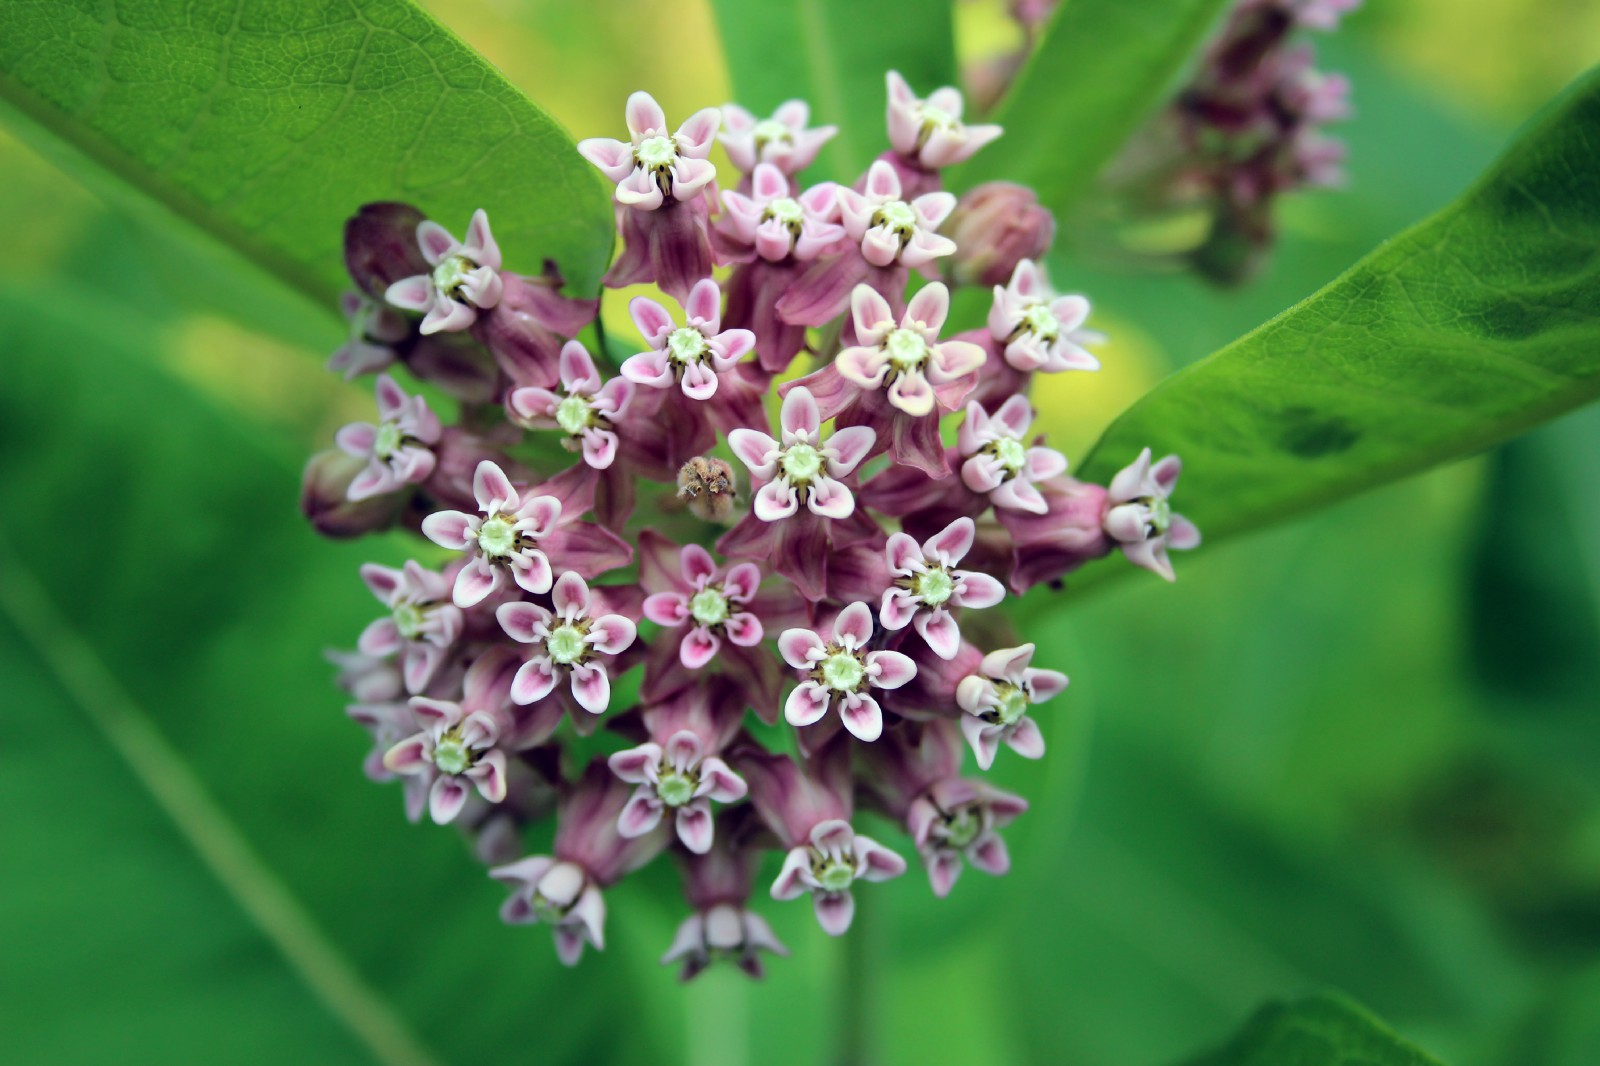 Milkweed >> Spreading Milkweed Not Myths Updates From The U S Fish And